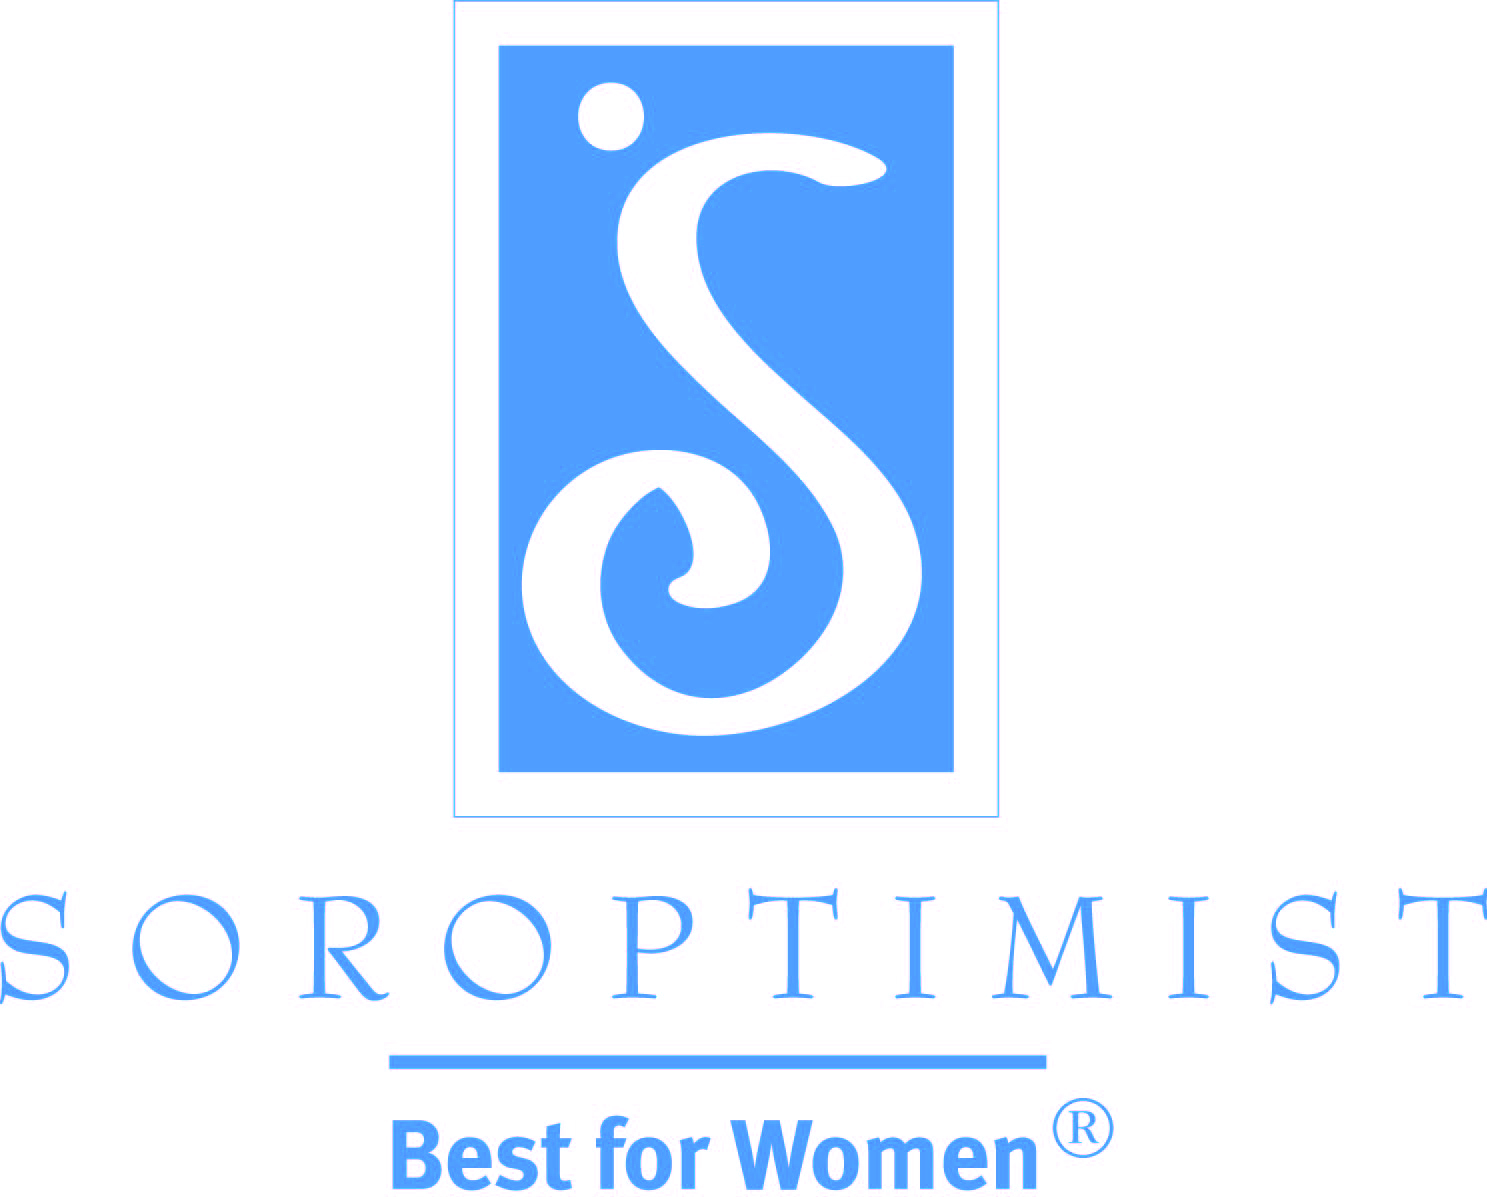 Soroptimist - Best for Women